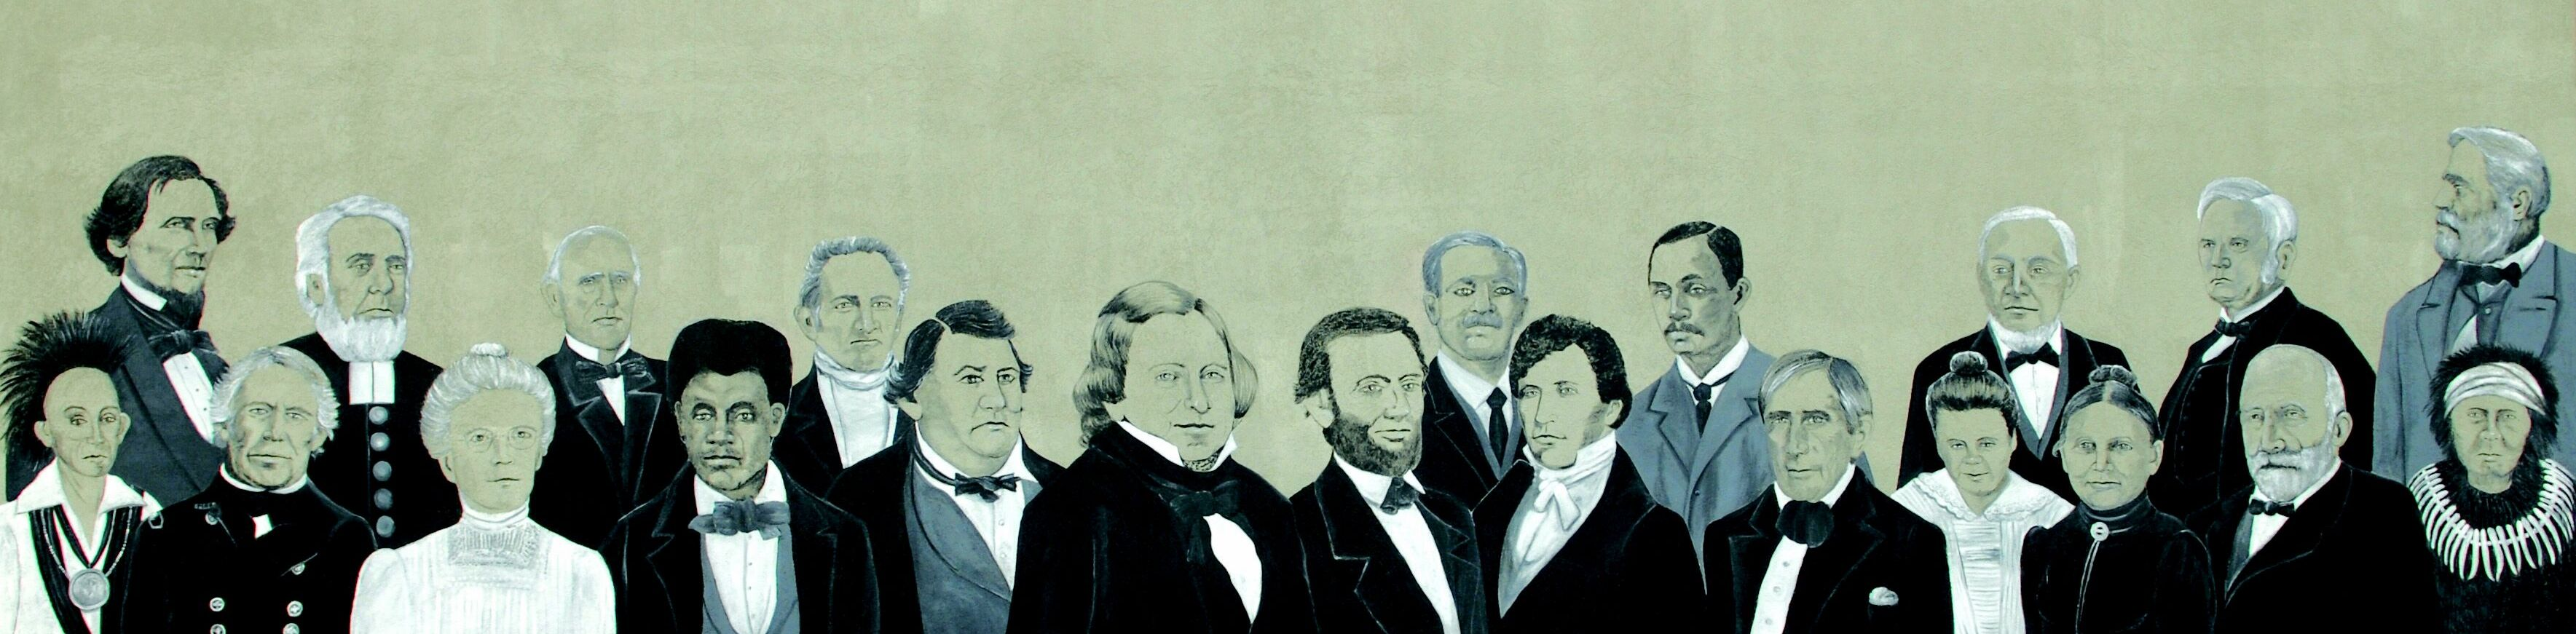 Painting of famous people including Lincoln